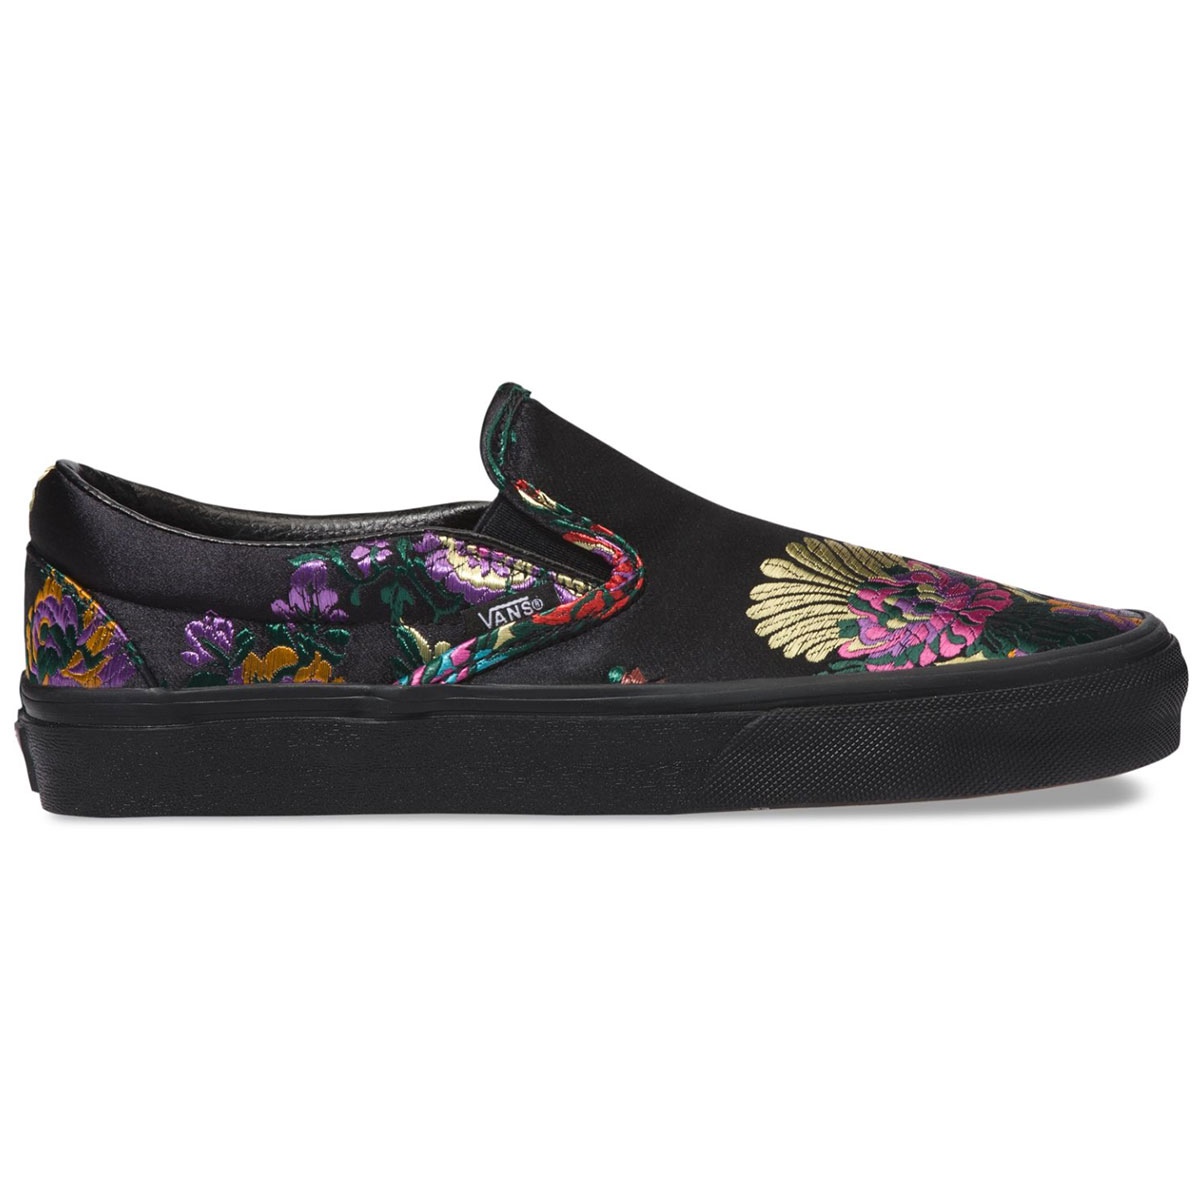 Vans Unisex Festival Satin Classic Slip-On Shoes - Black, 7